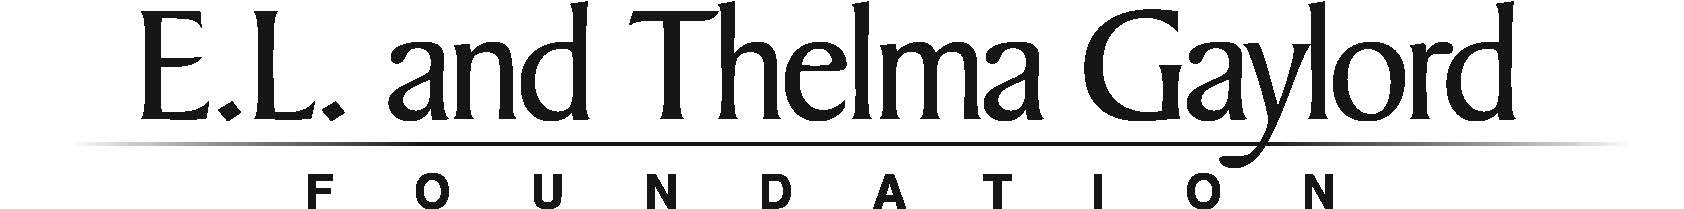 E.L. and Thelma Gaylord Foundation Logo